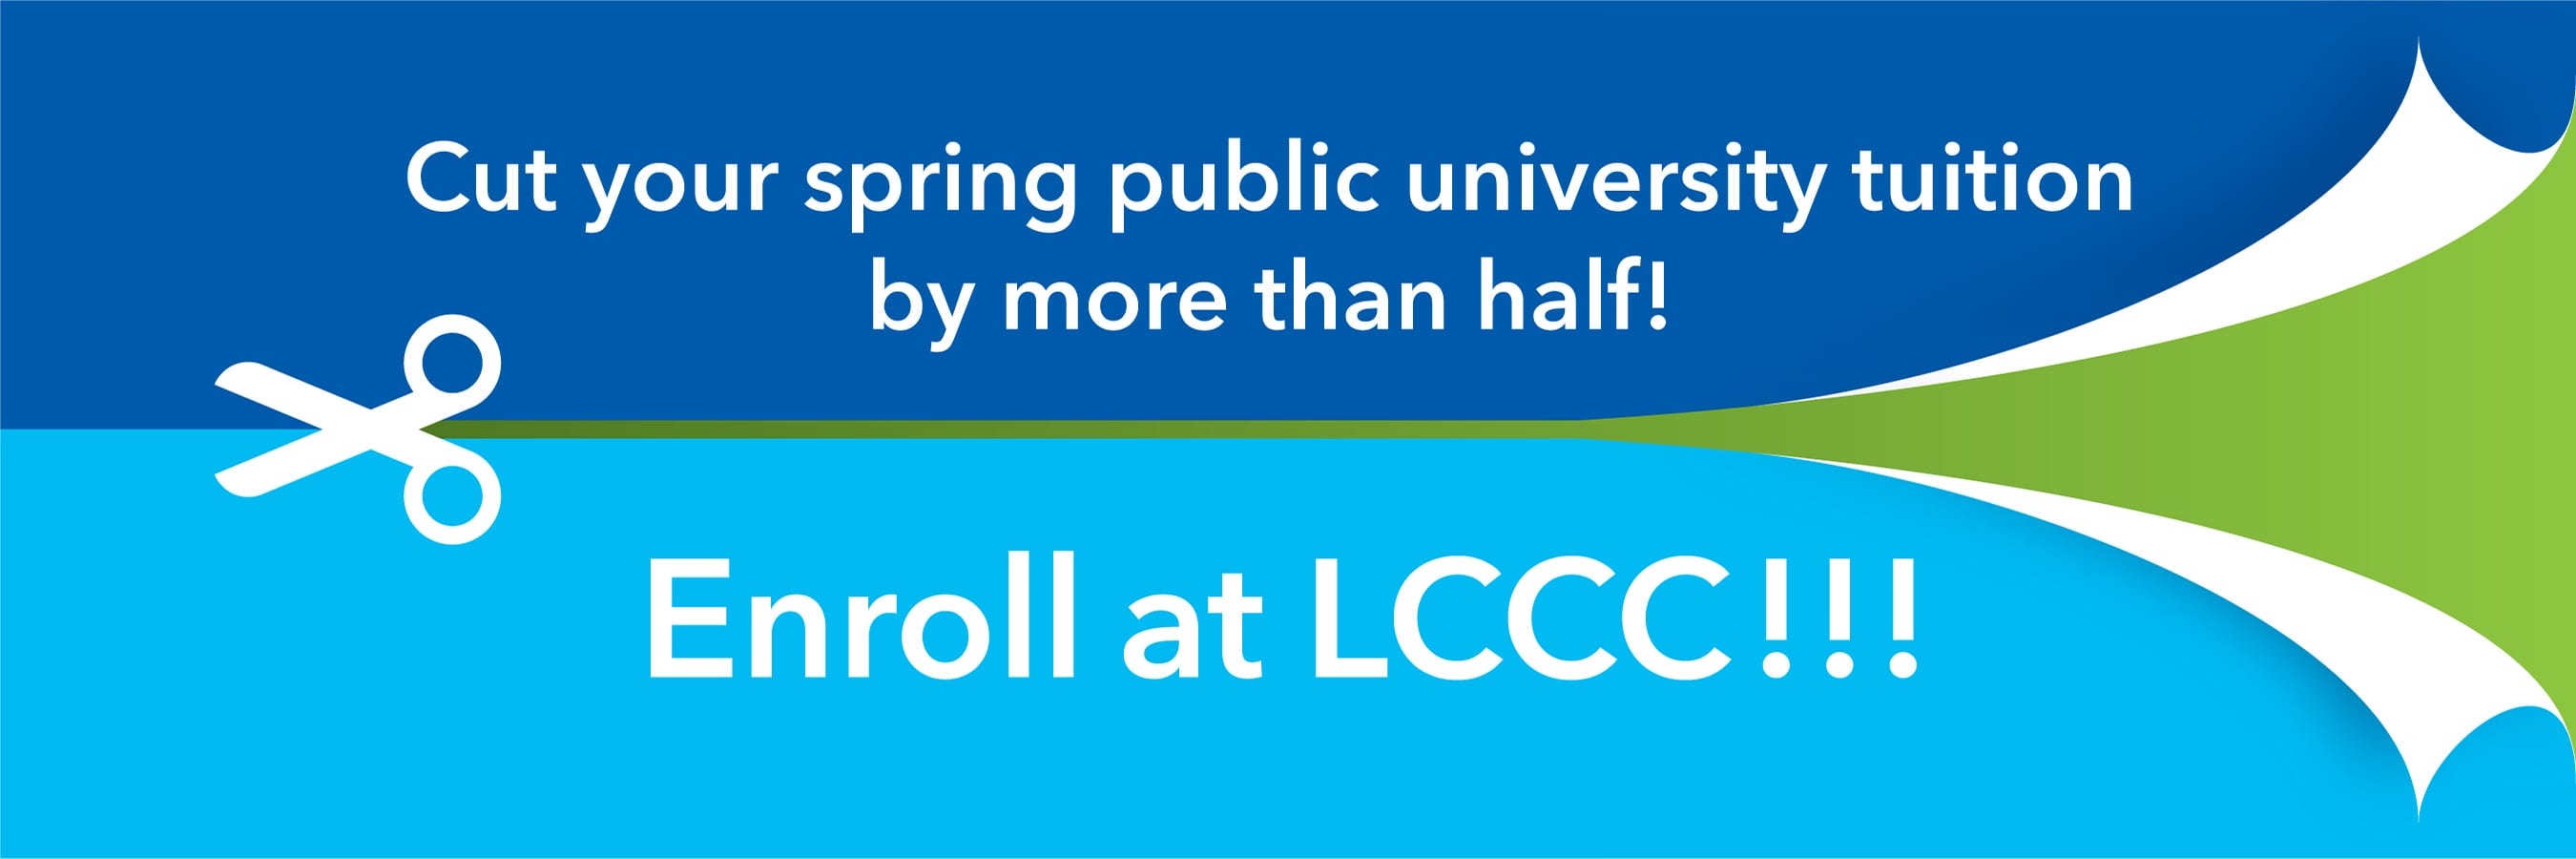 Cut Your Spring public university tuition by more than half! Enroll at LCCC!!!